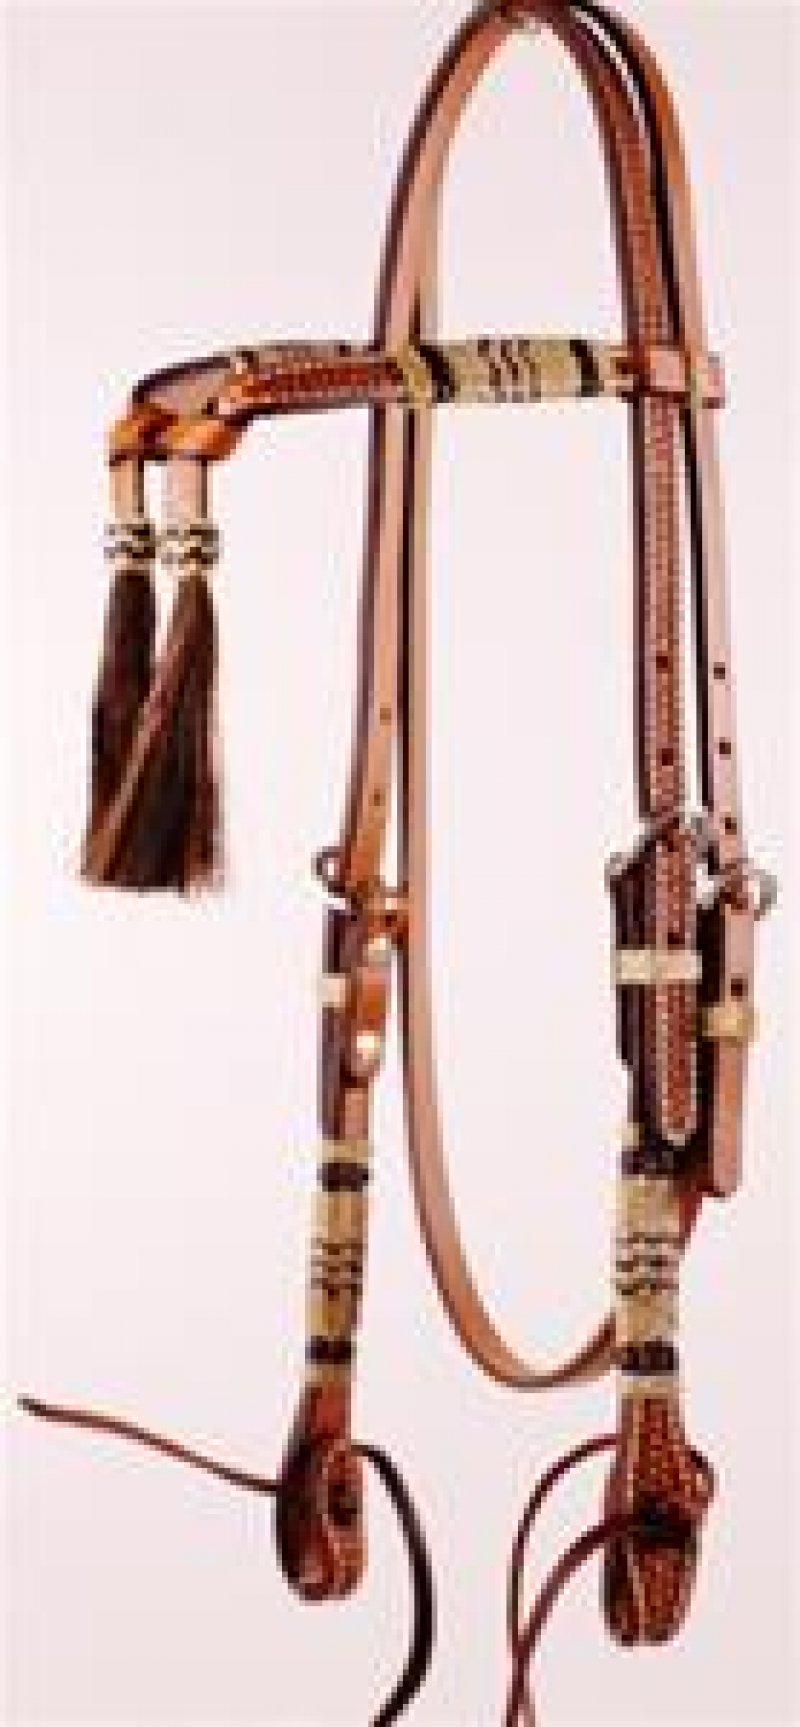 Tooled Futurity Knot Browband Headstall with Black & Natural Rawhide and Ties